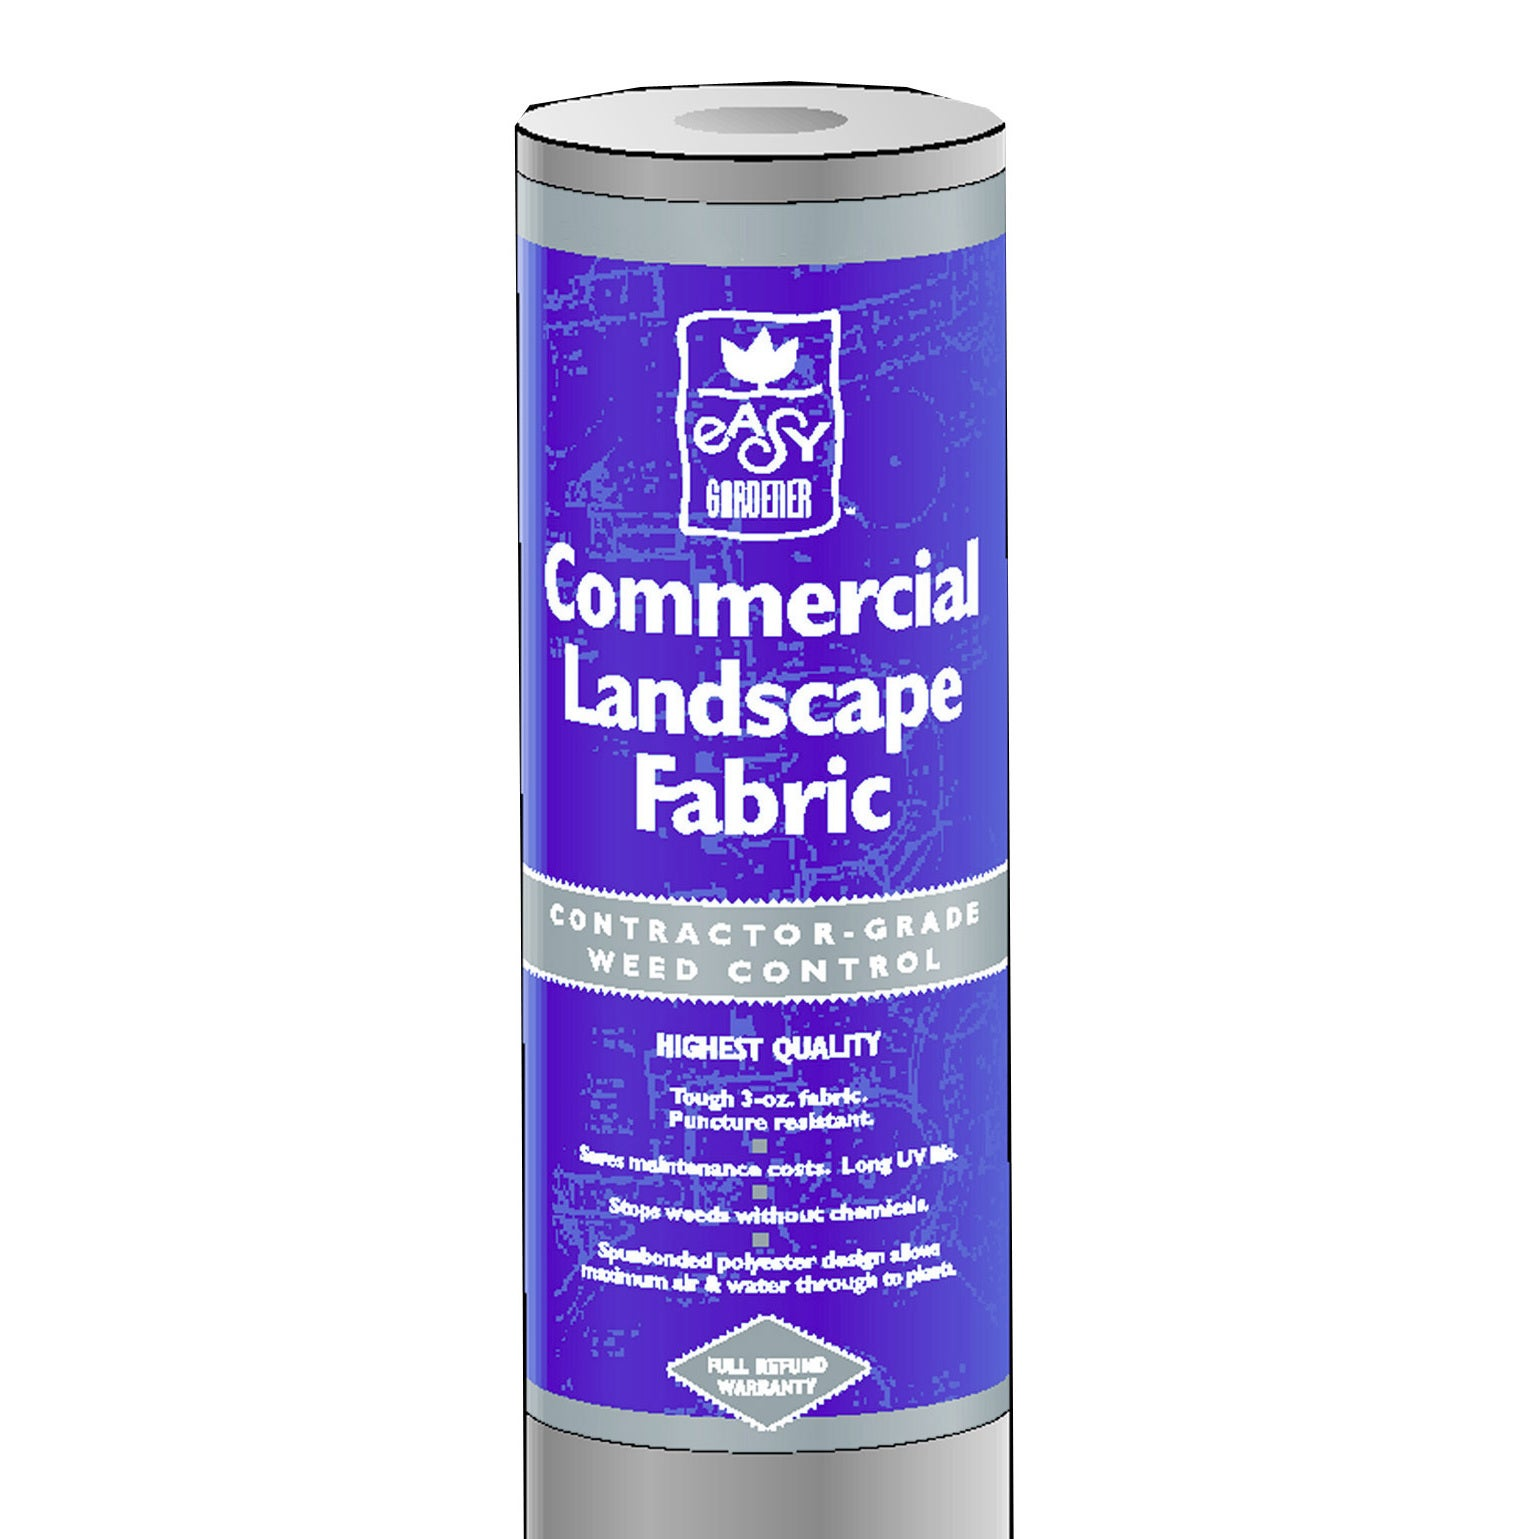 Easy Gardener 2504 Commercial Weed Block Landscape Fabric, 3 X 50-ft.